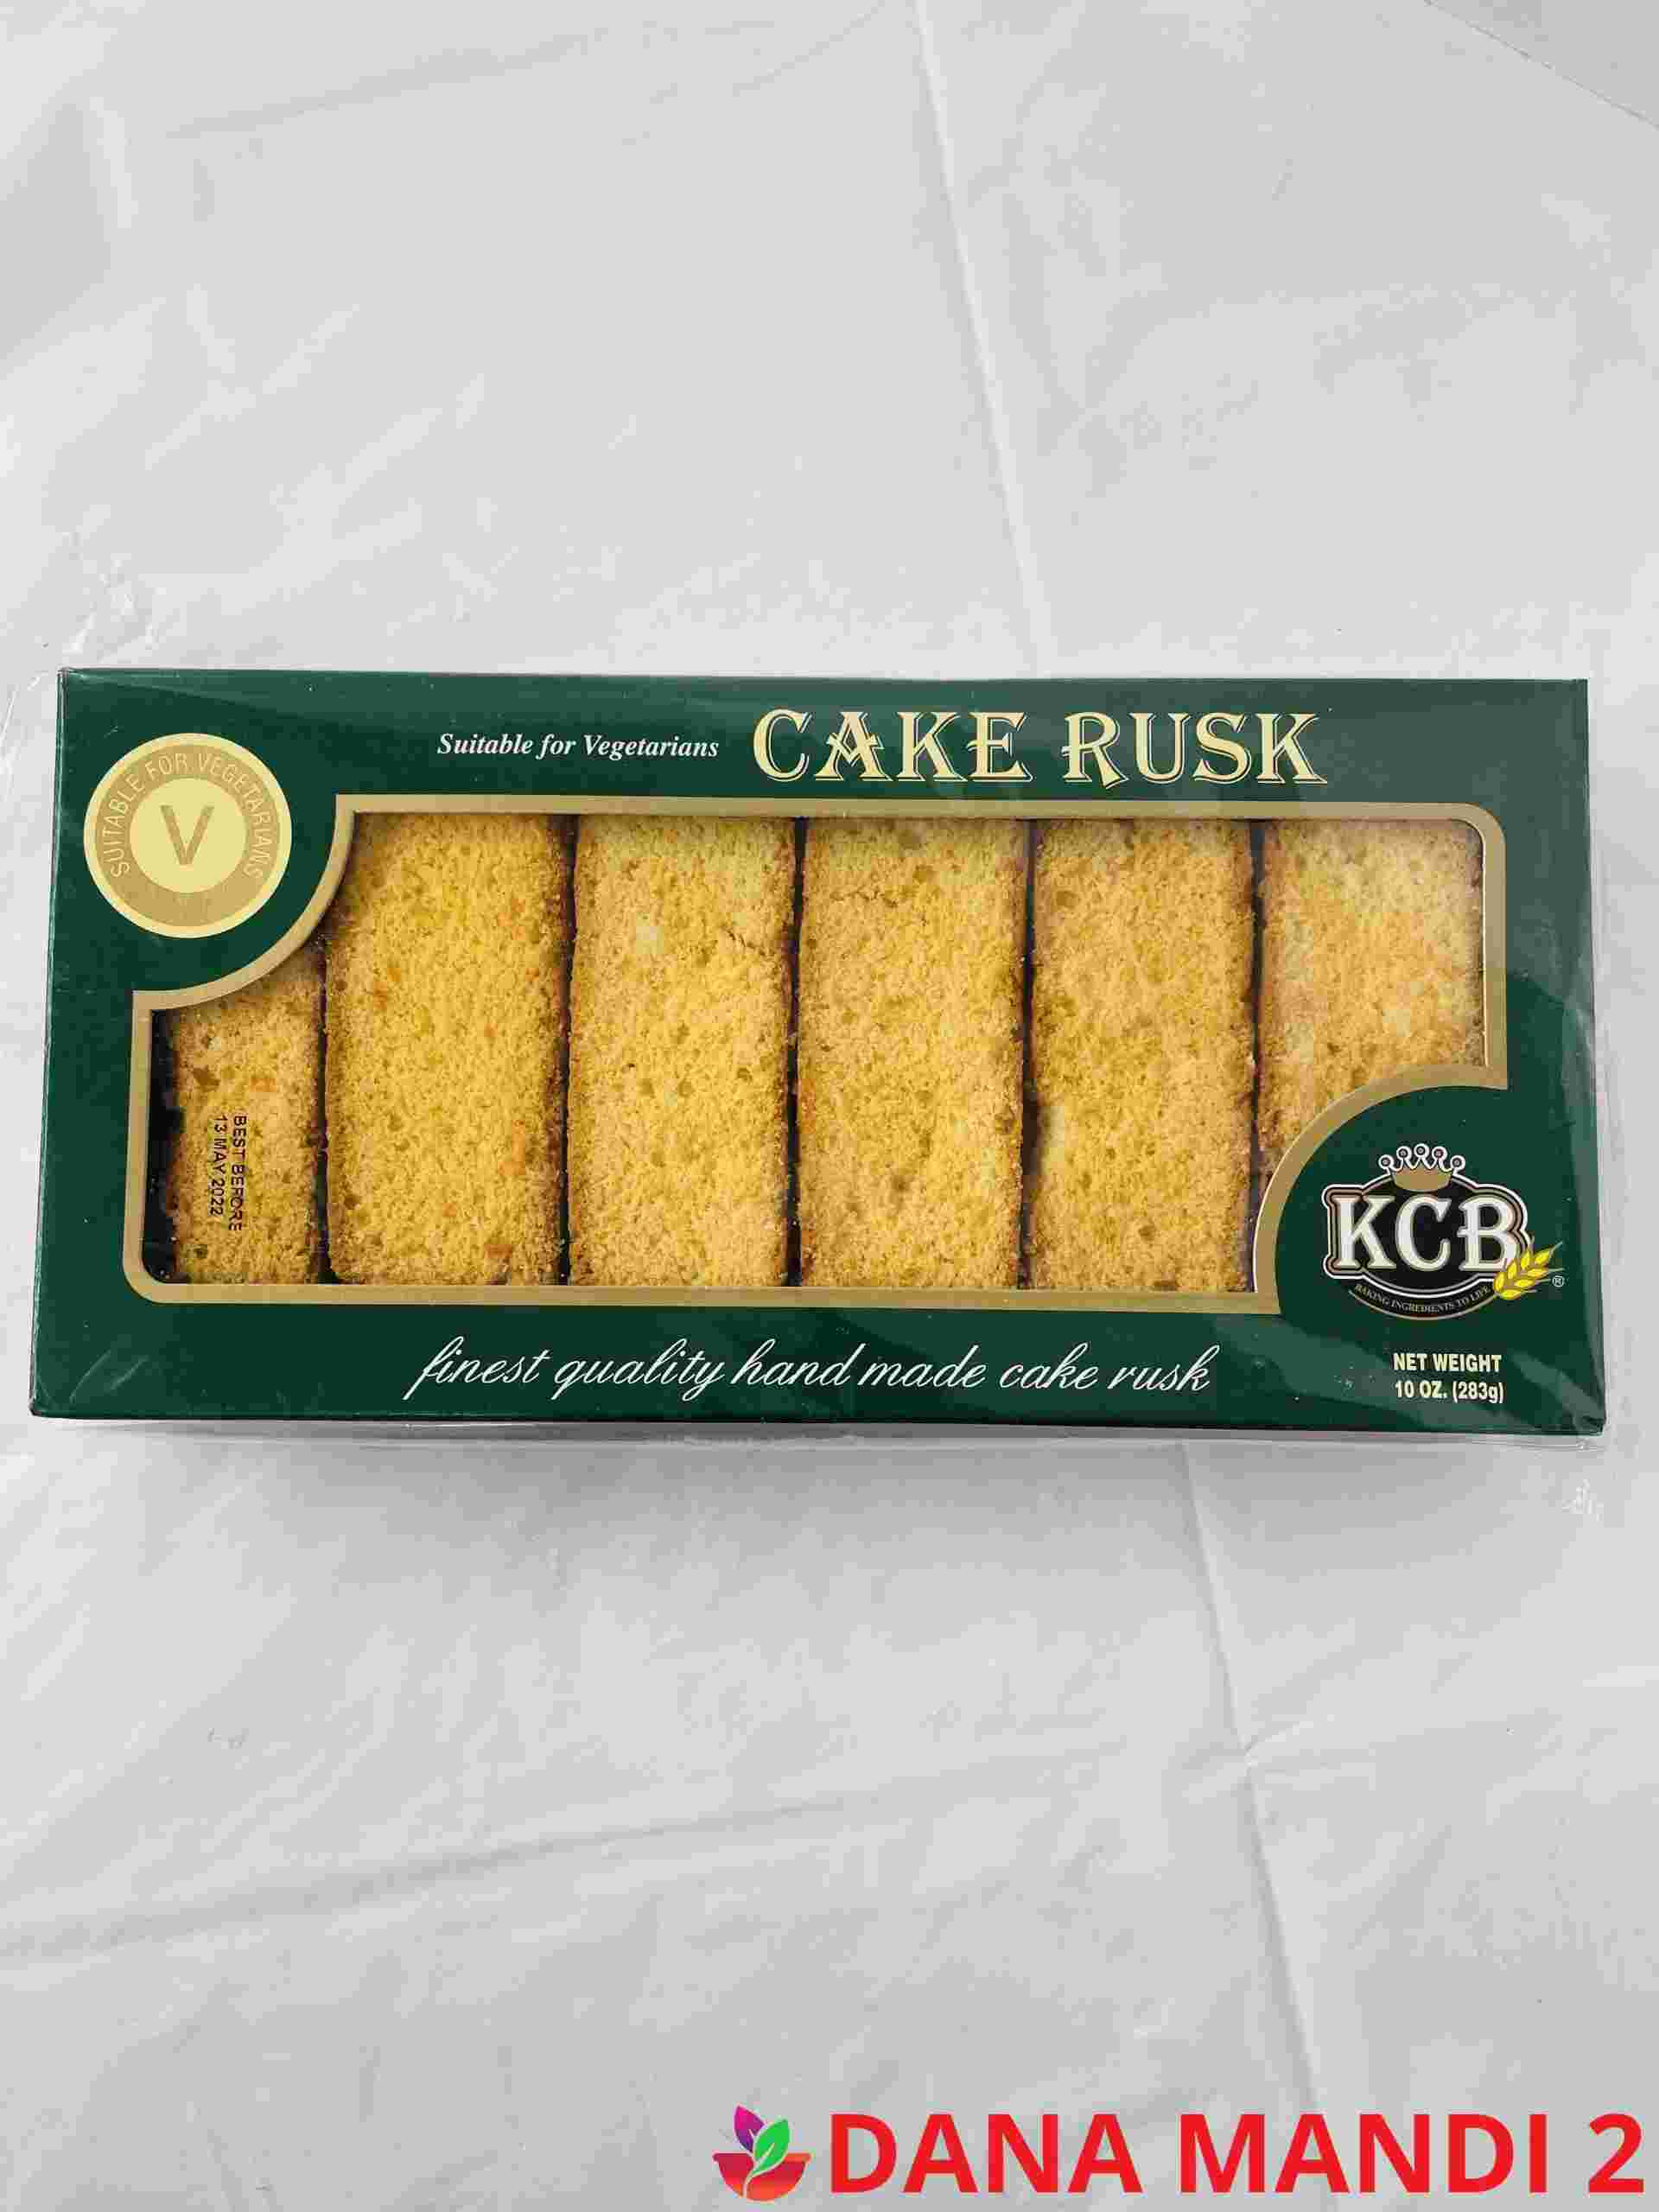 KCB Cake Rusk Sutable For Vegetarians (Green Box) Small